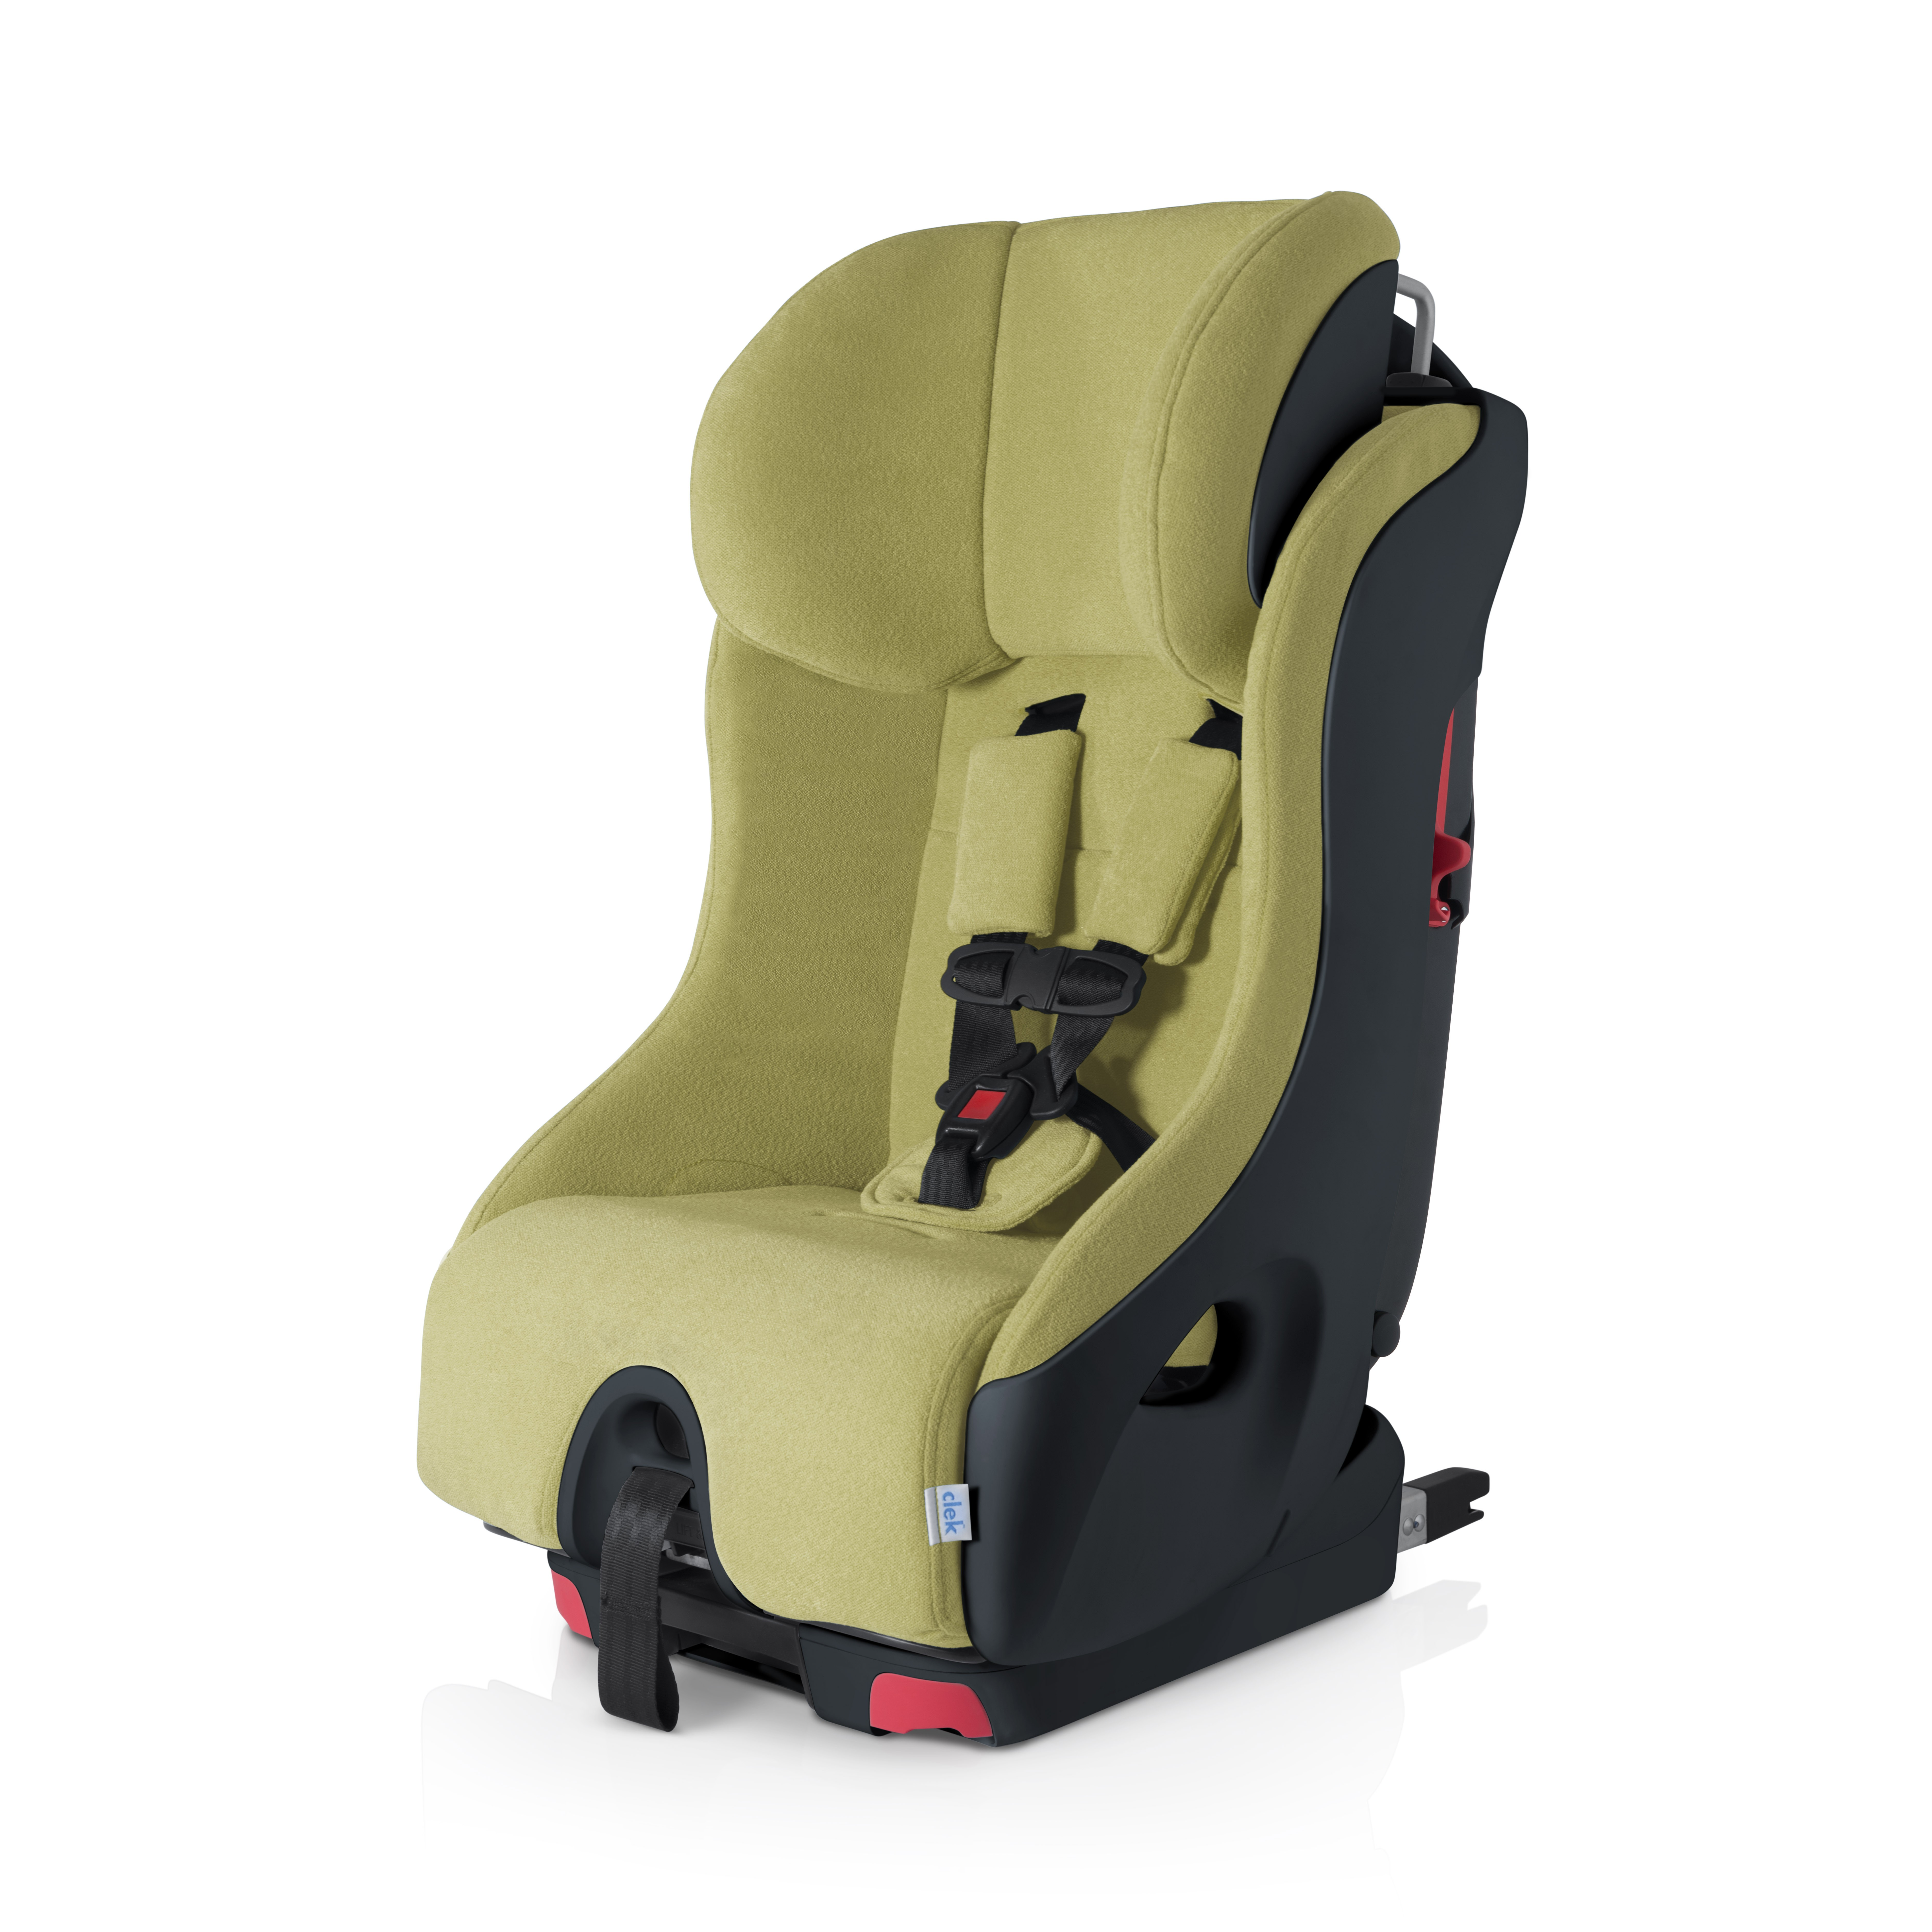 clek foonf convertible car seat 2017 tank free shipping no tax. Black Bedroom Furniture Sets. Home Design Ideas